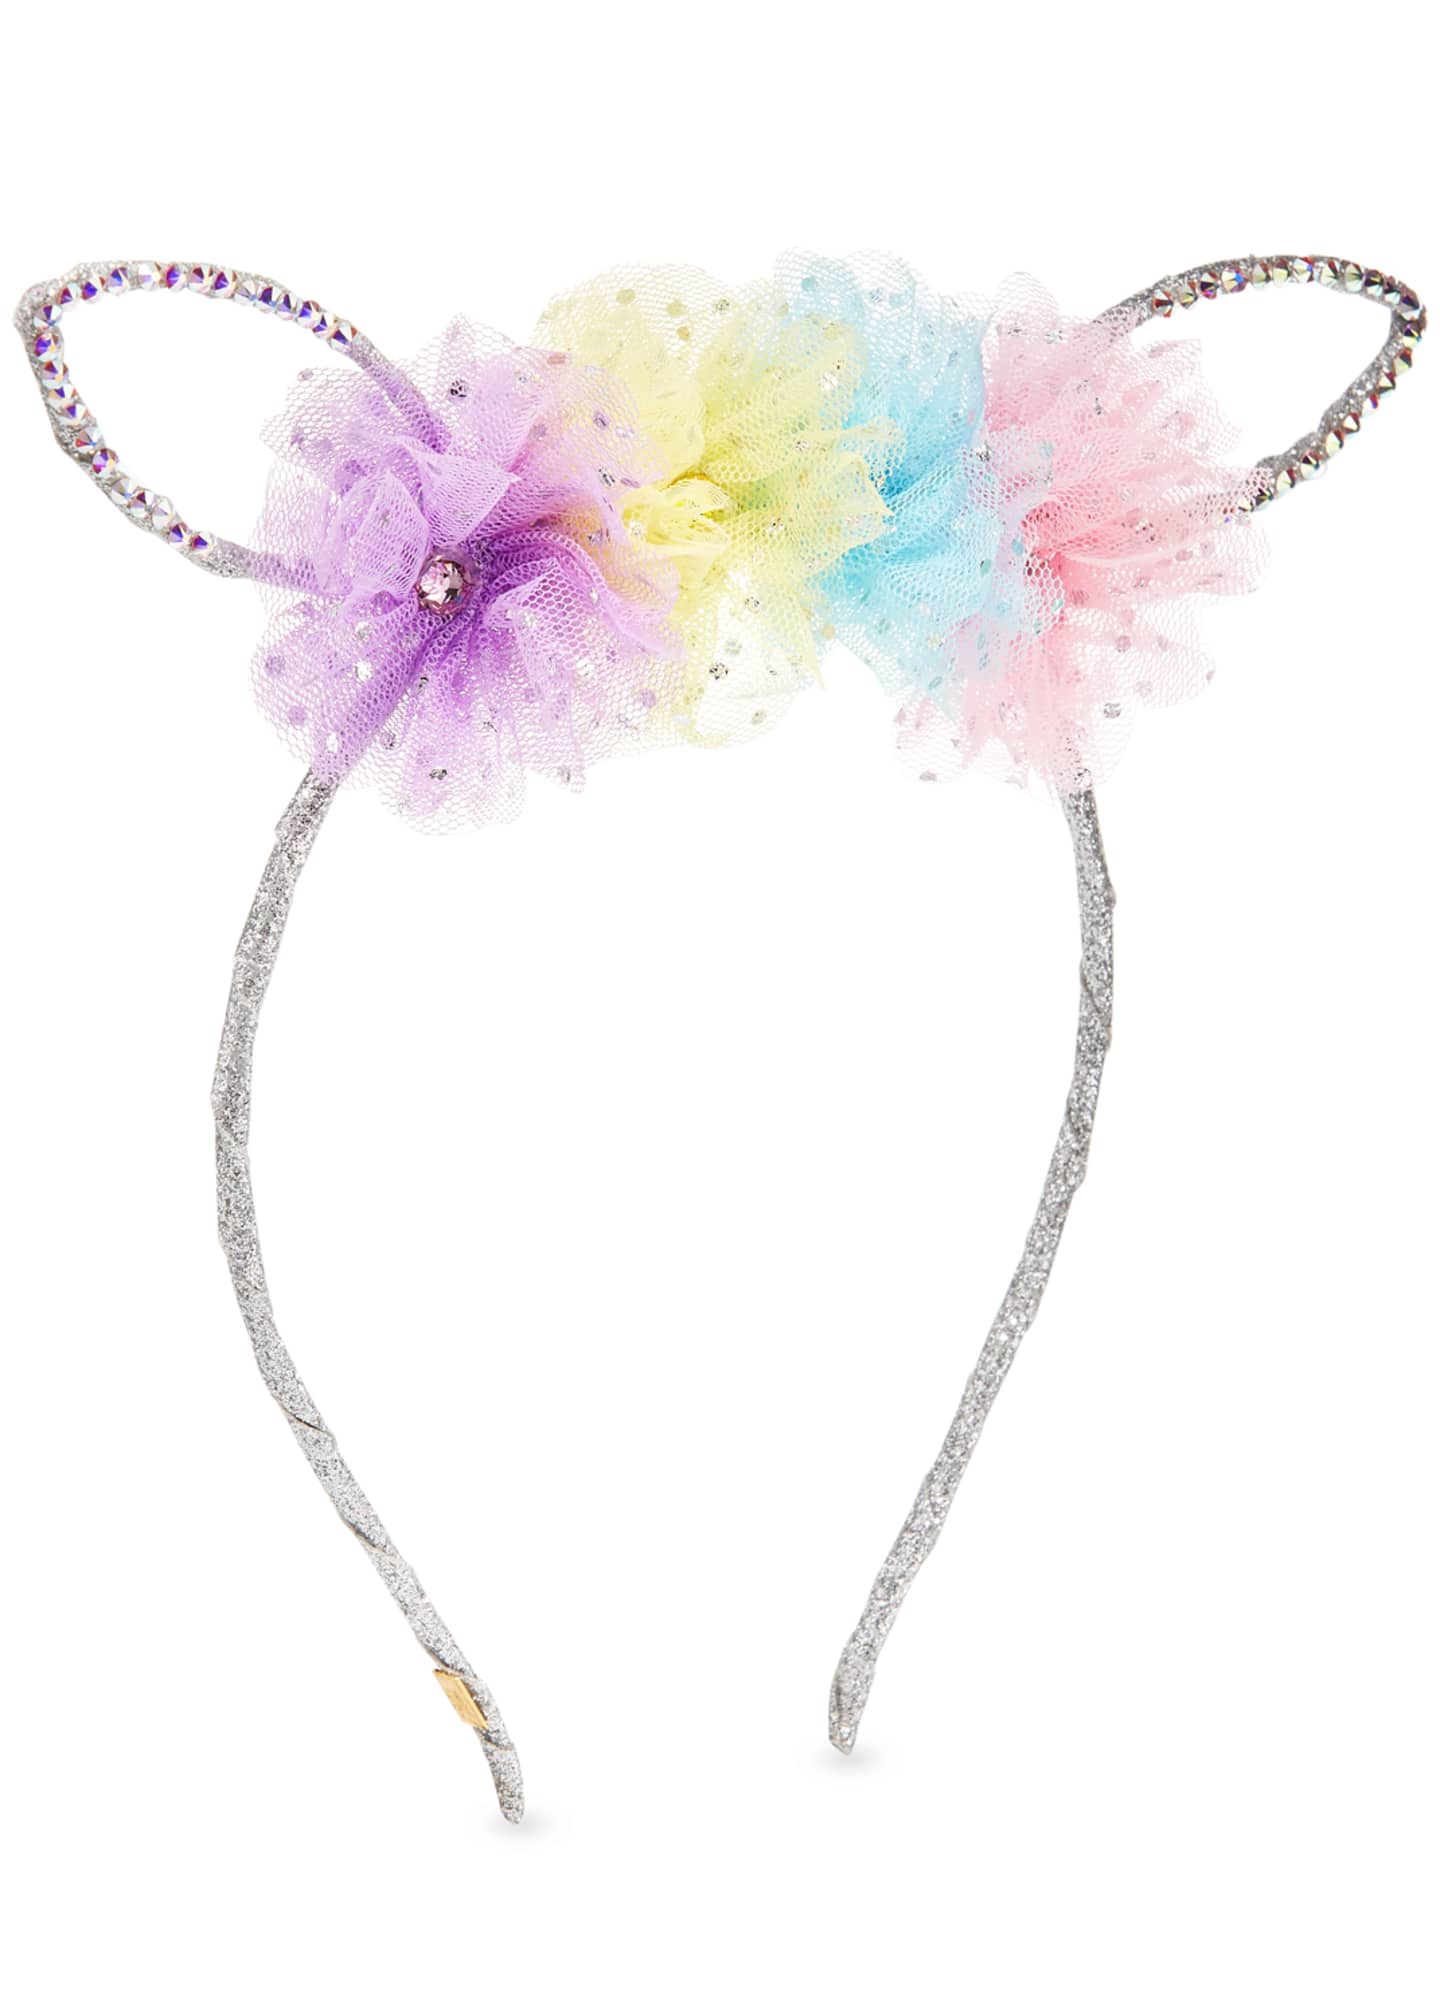 Bari Lynn Girls' Bunny Ear Headband w/ Multicolored